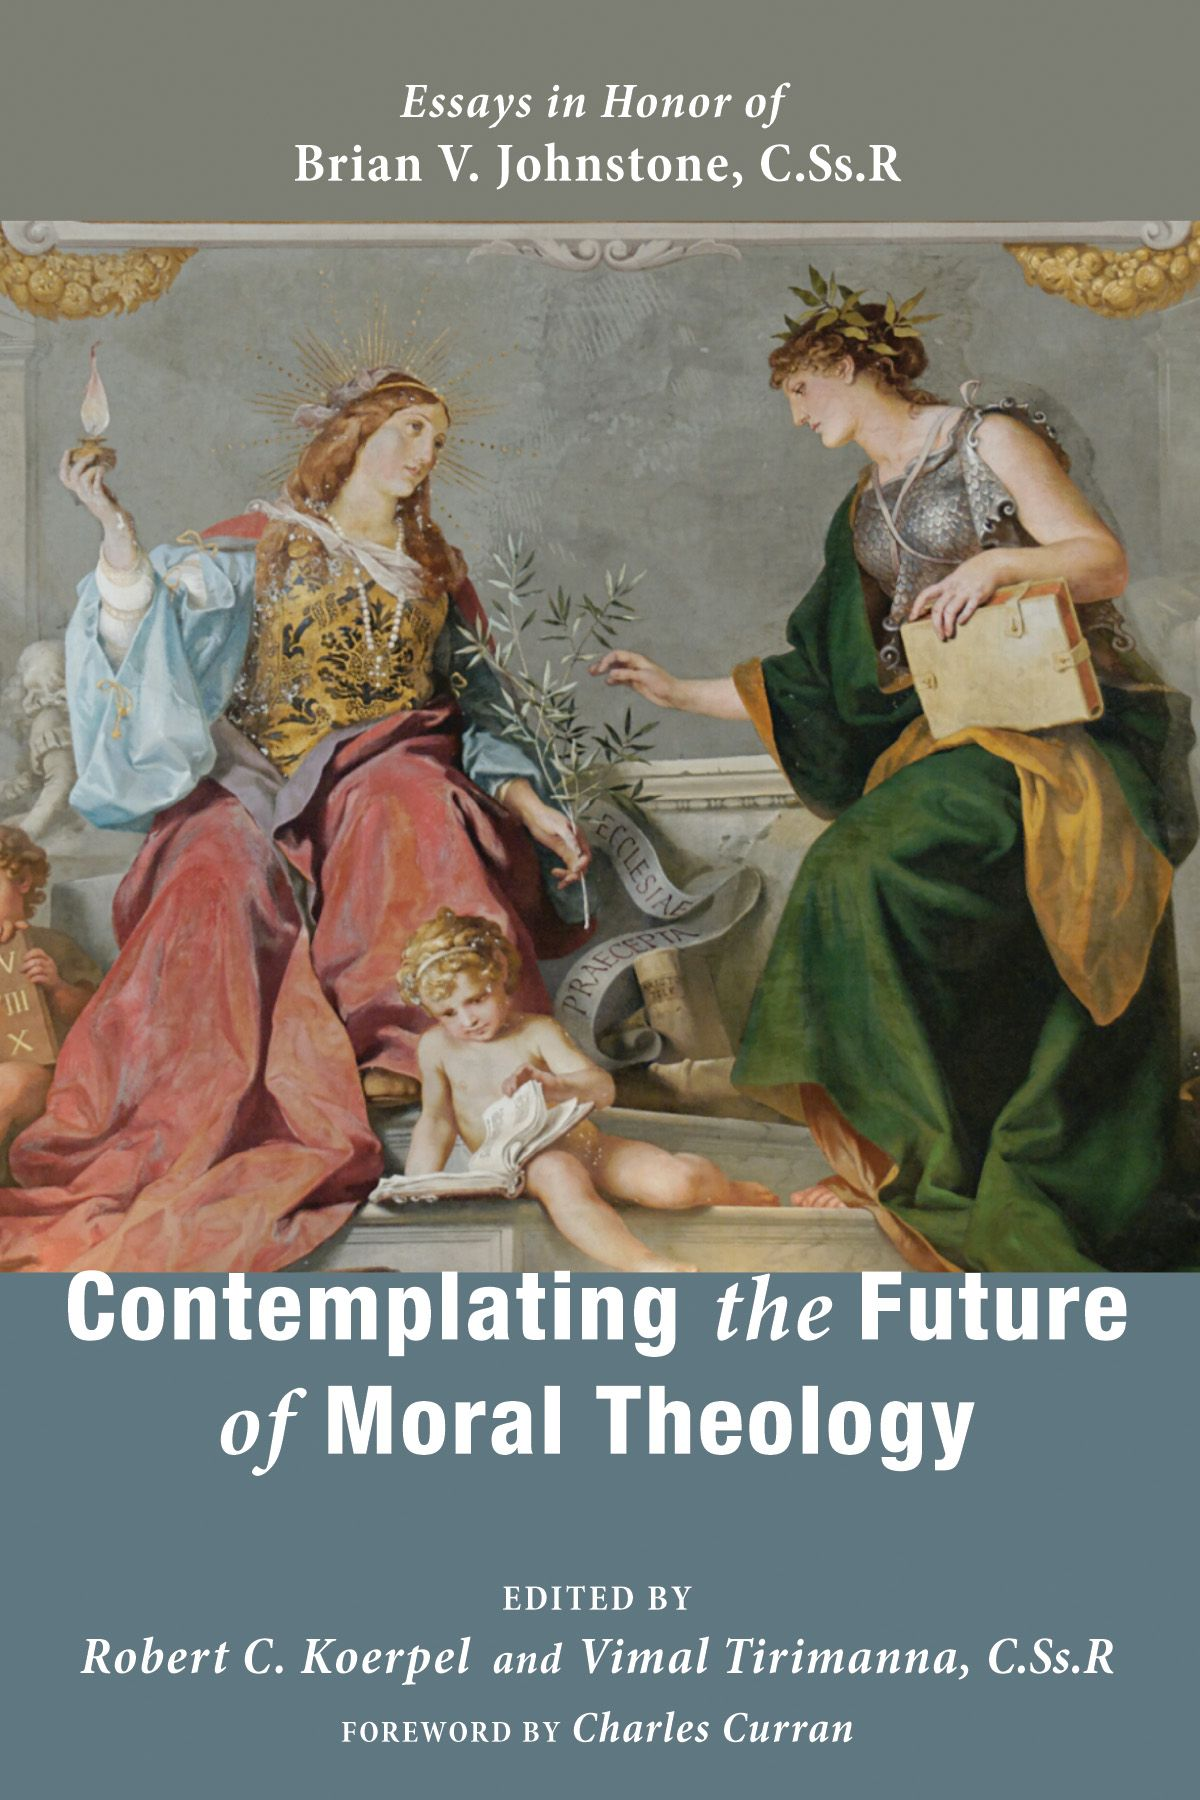 Essay About Science Contemplating The Future Of Moral Theology Essays In Honor Of Brian V  Johnstone Essay For Science also High School Admission Essay Contemplating The Future Of Moral Theology Essays In Honor Of Brian  Compare Contrast Essay Papers